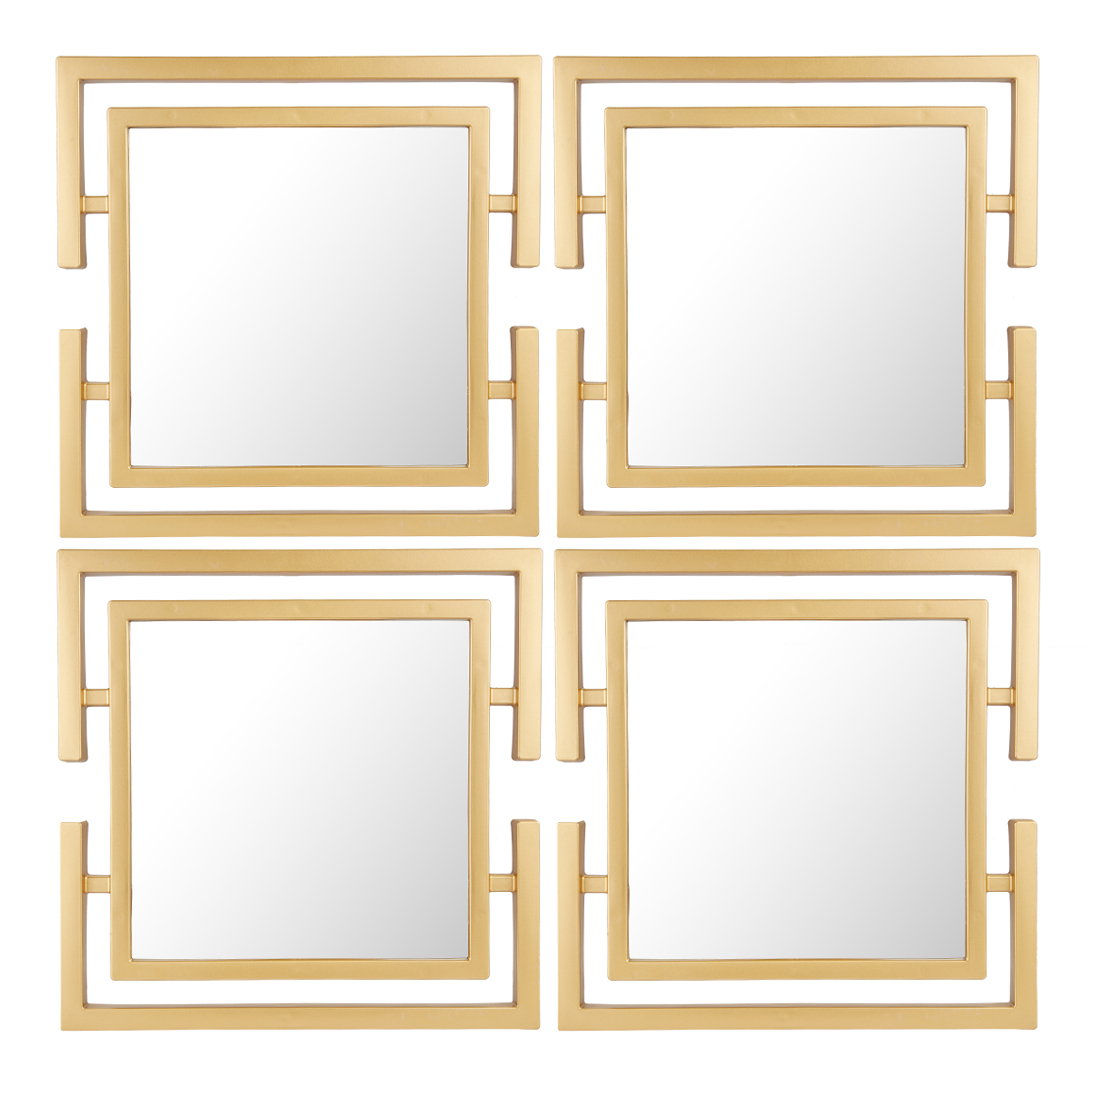 Mirage Square Set Of Four Gold Mirror Wall Accents in Gold Colour by Living Essence